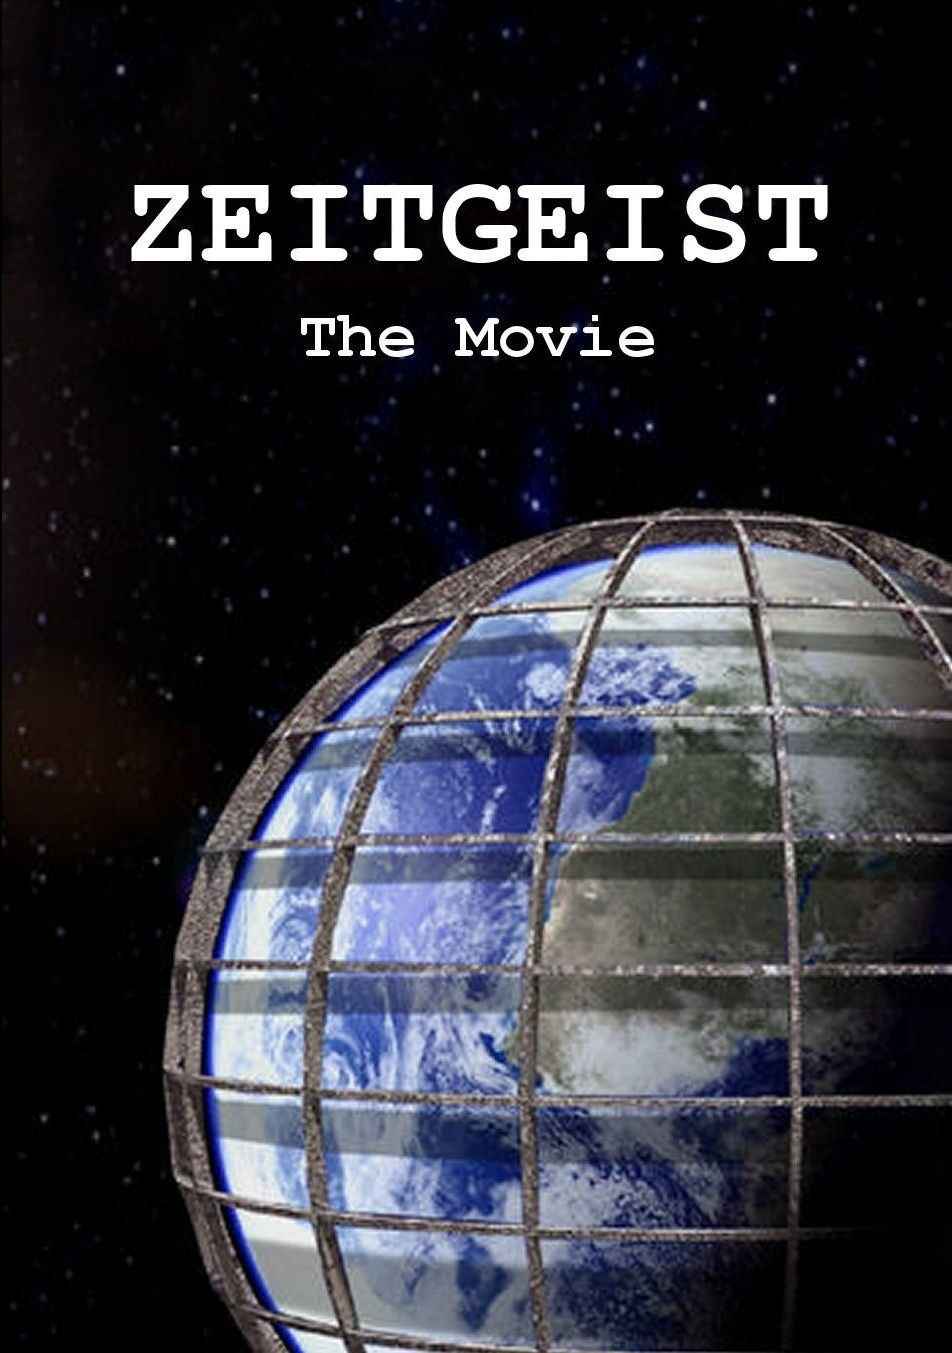 Zeitgeist: The Movie (2007) ταινιες online seires oipeirates greek subs